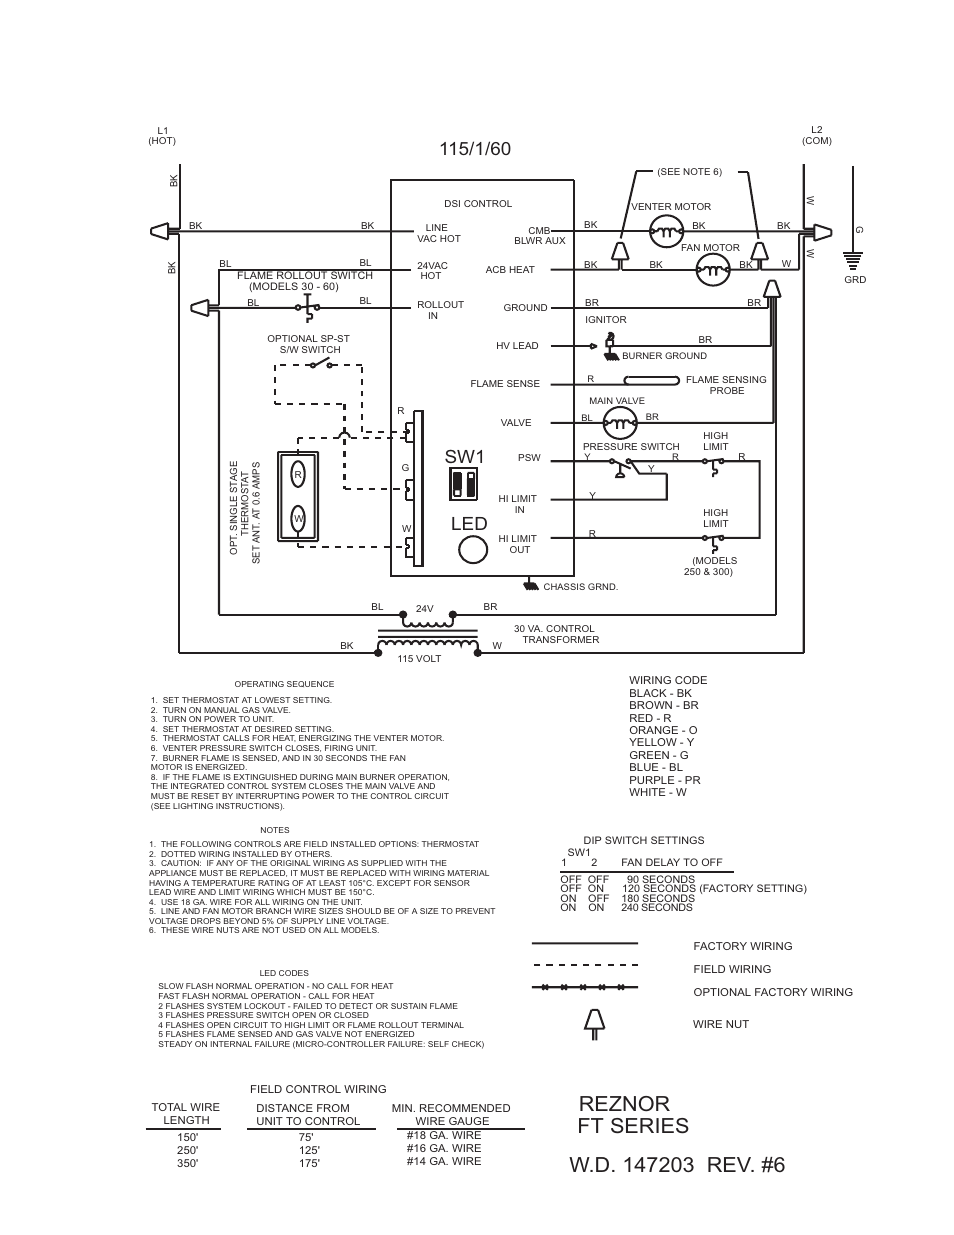 reznor ft unit installation manual page13 reznor furnace wiring diagram reznor wiring schematic oil pump reznor model f100 wiring diagram at alyssarenee.co